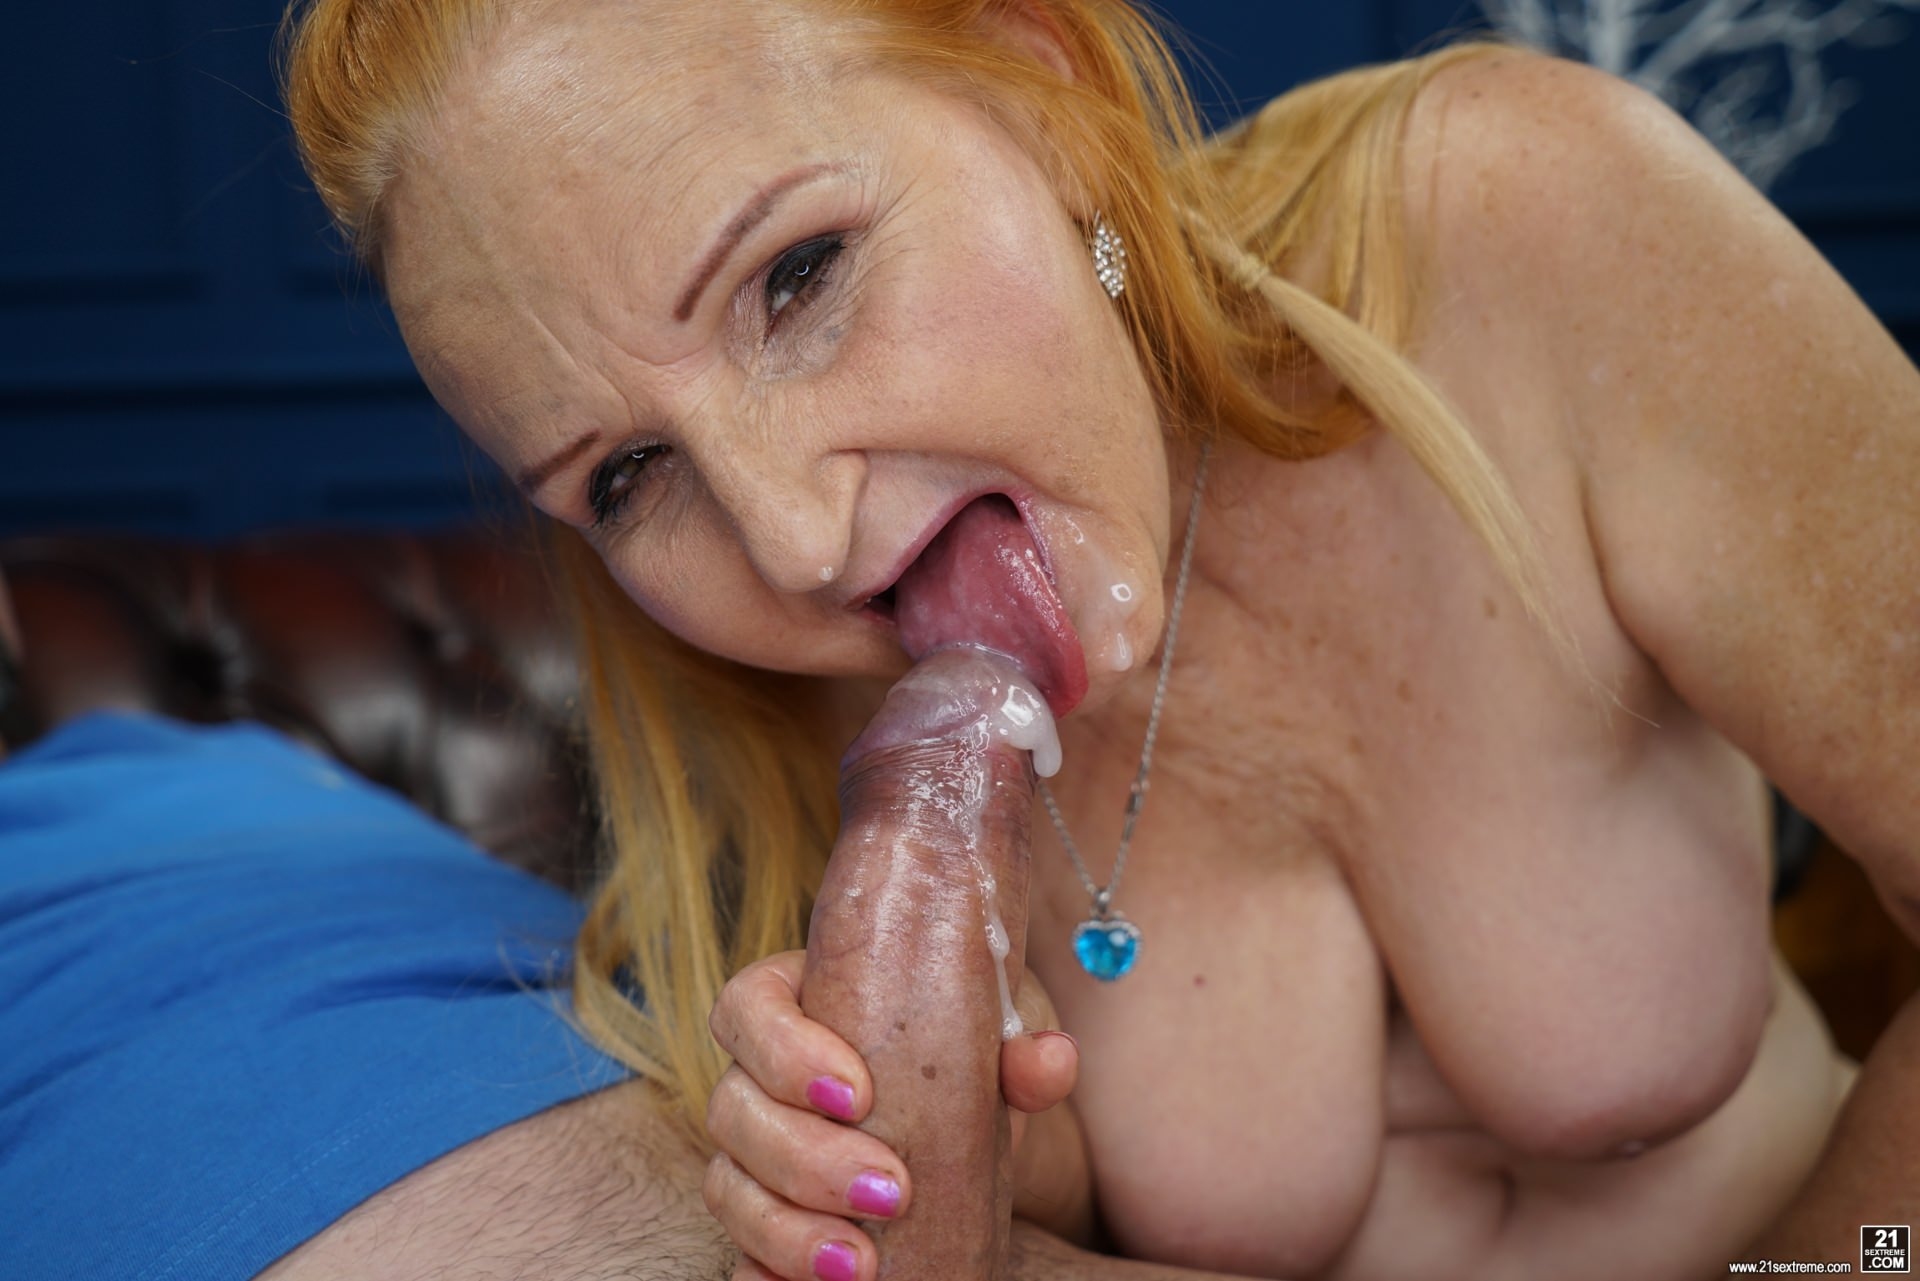 21Sextury 'Happiness Online' starring Marianne (Photo 105)